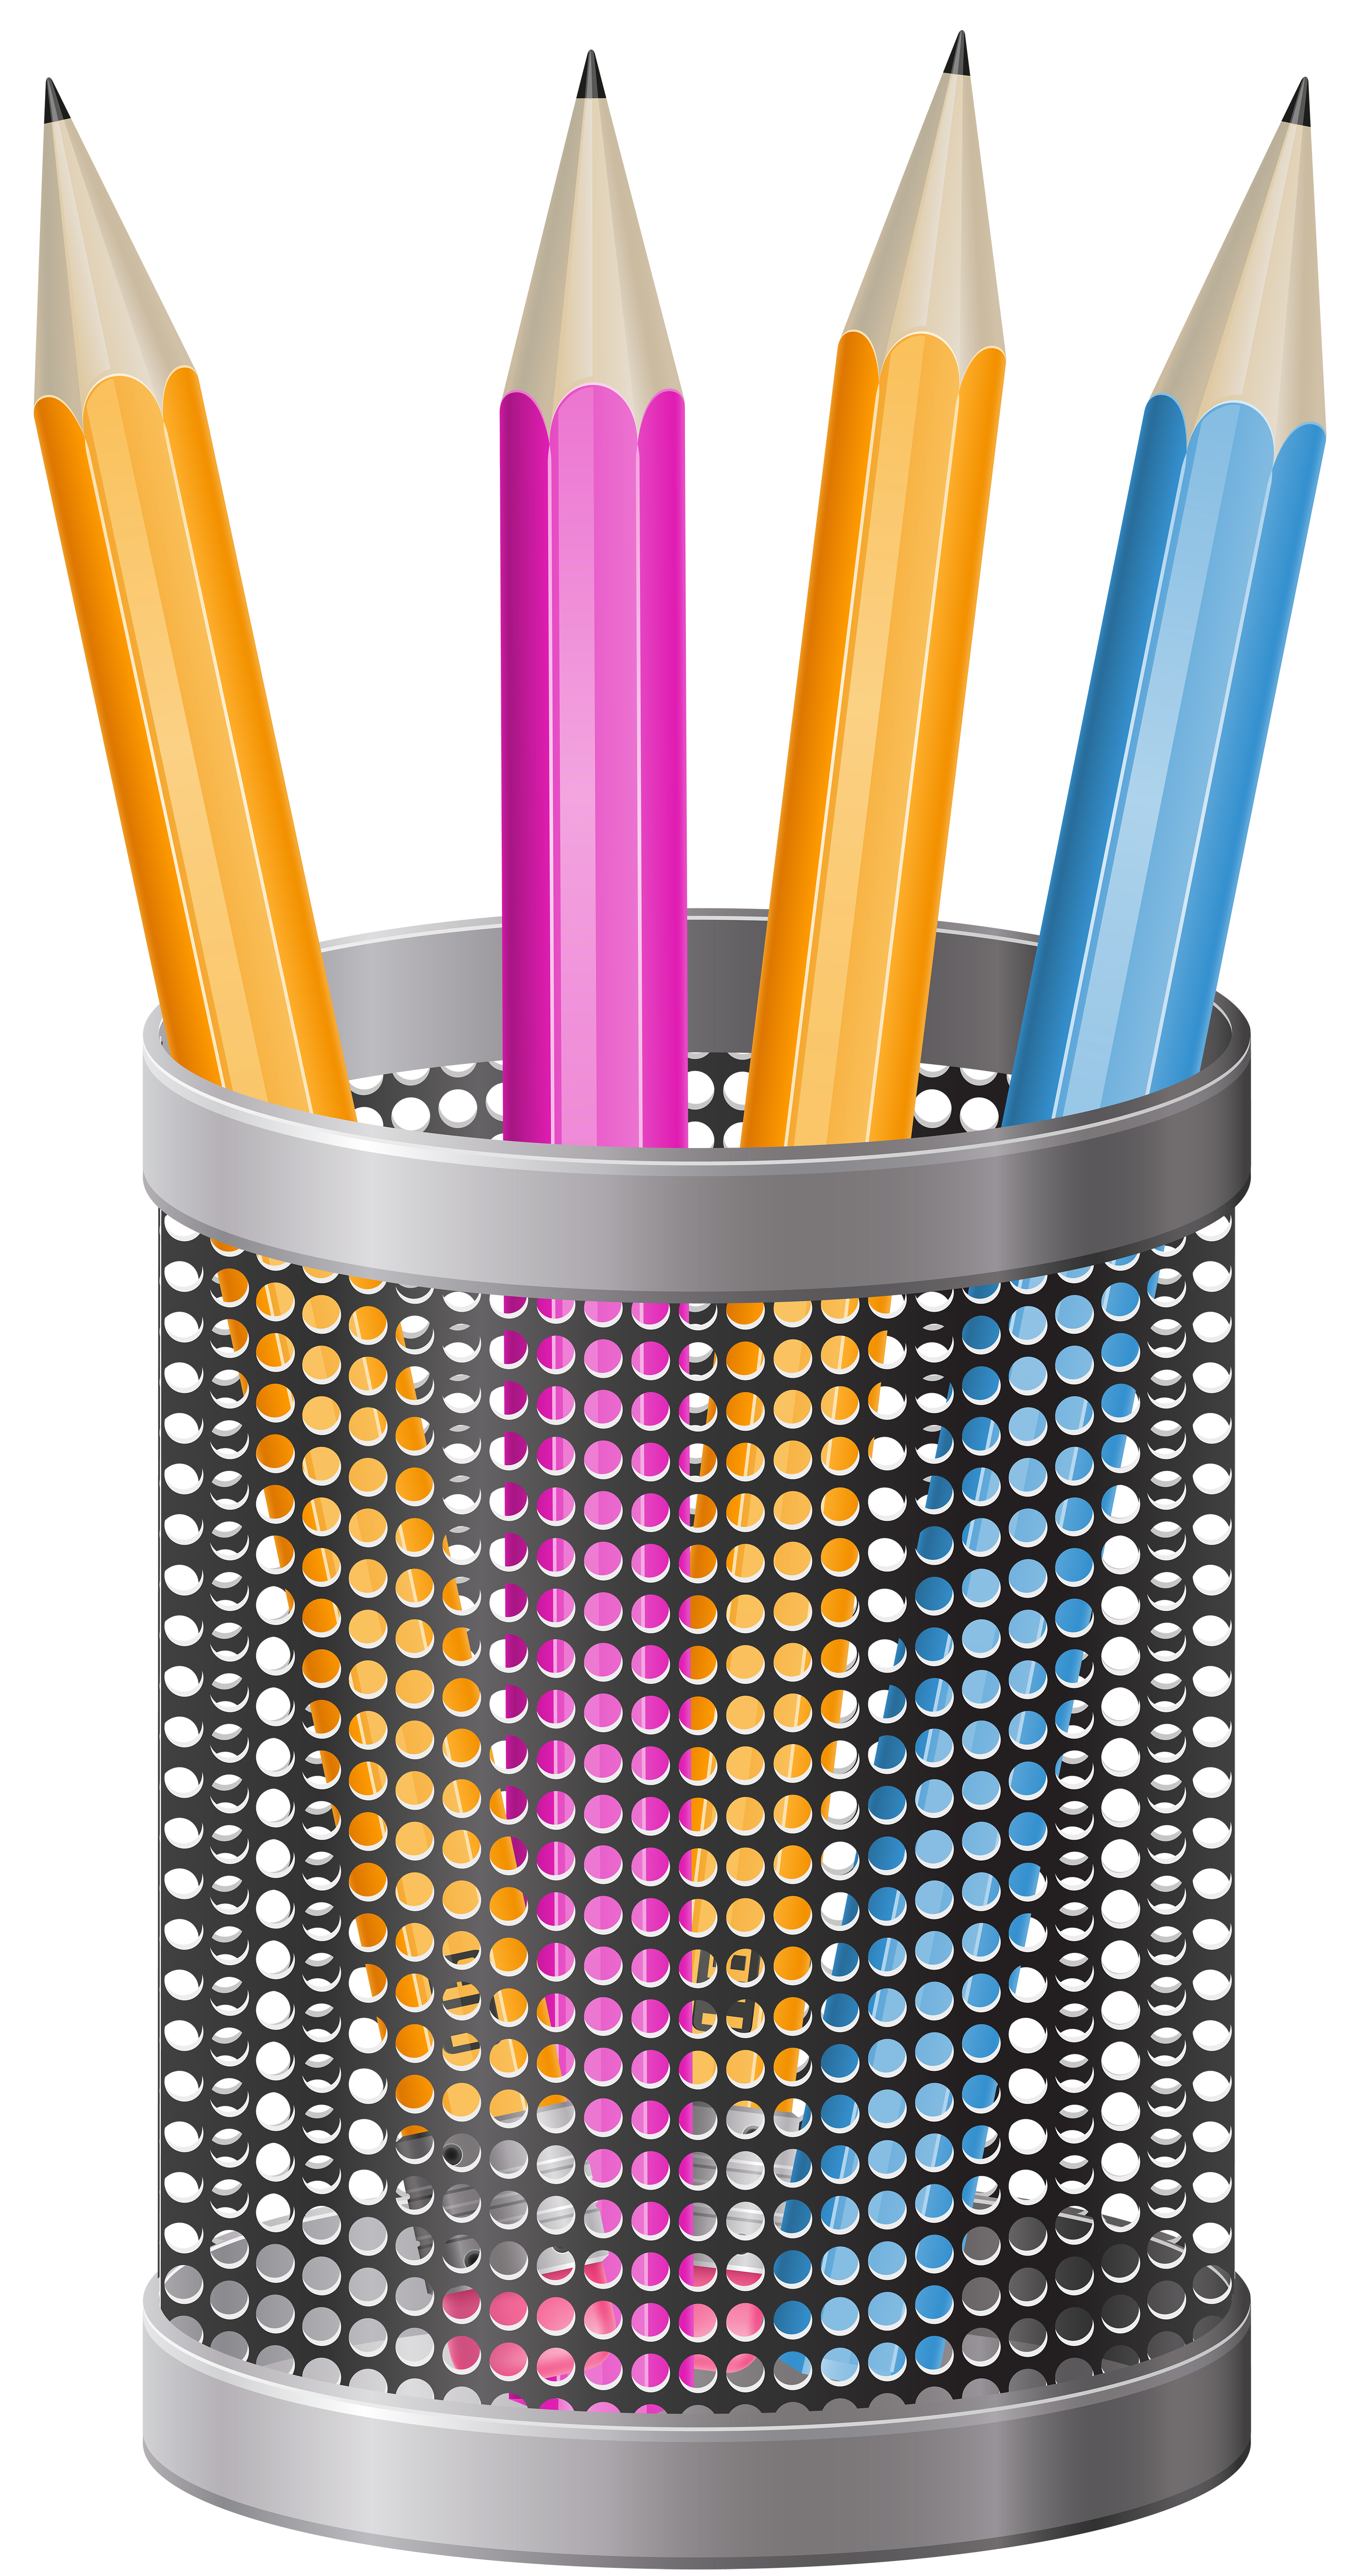 Cup transparent pens. Metal pencil png clip